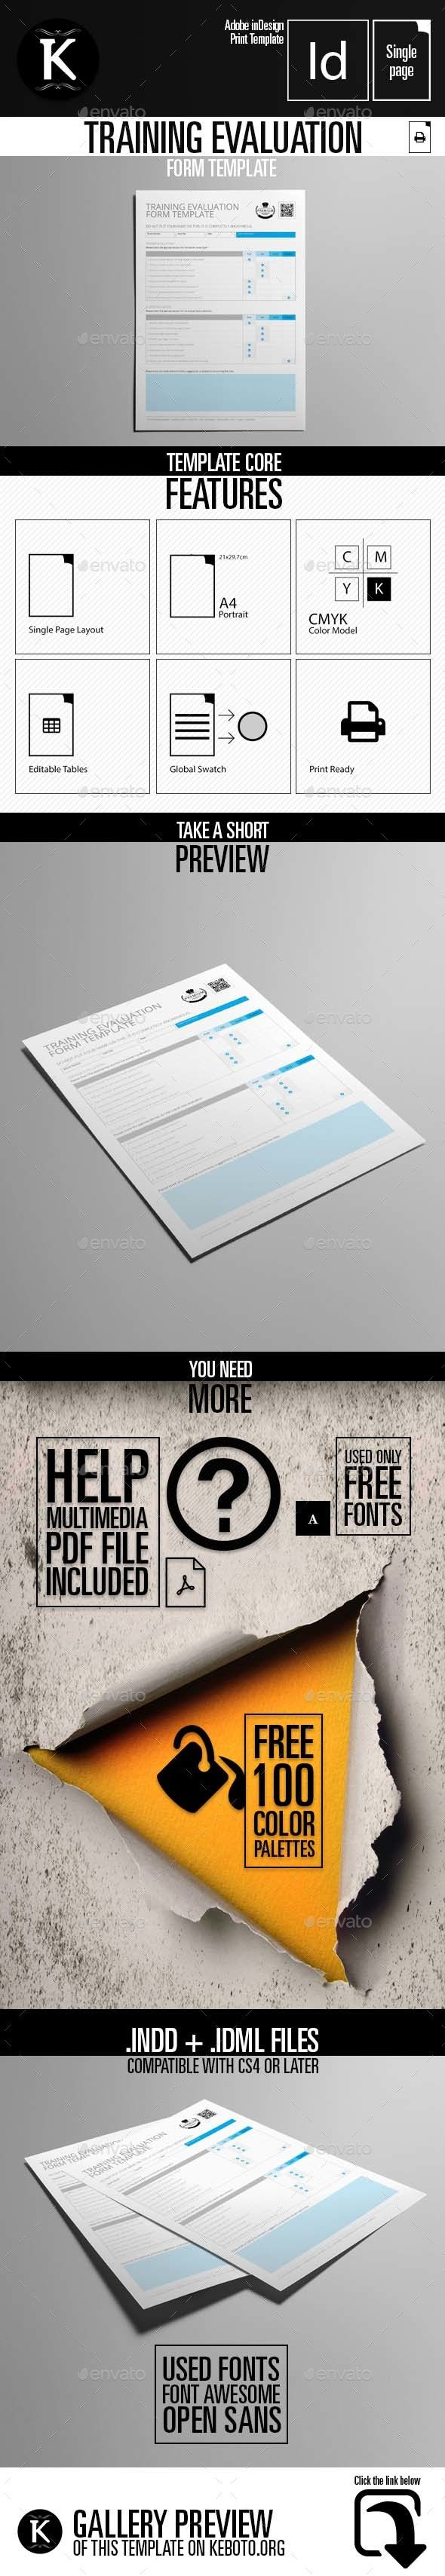 Poster design questionnaire - Training Evaluation Form Template